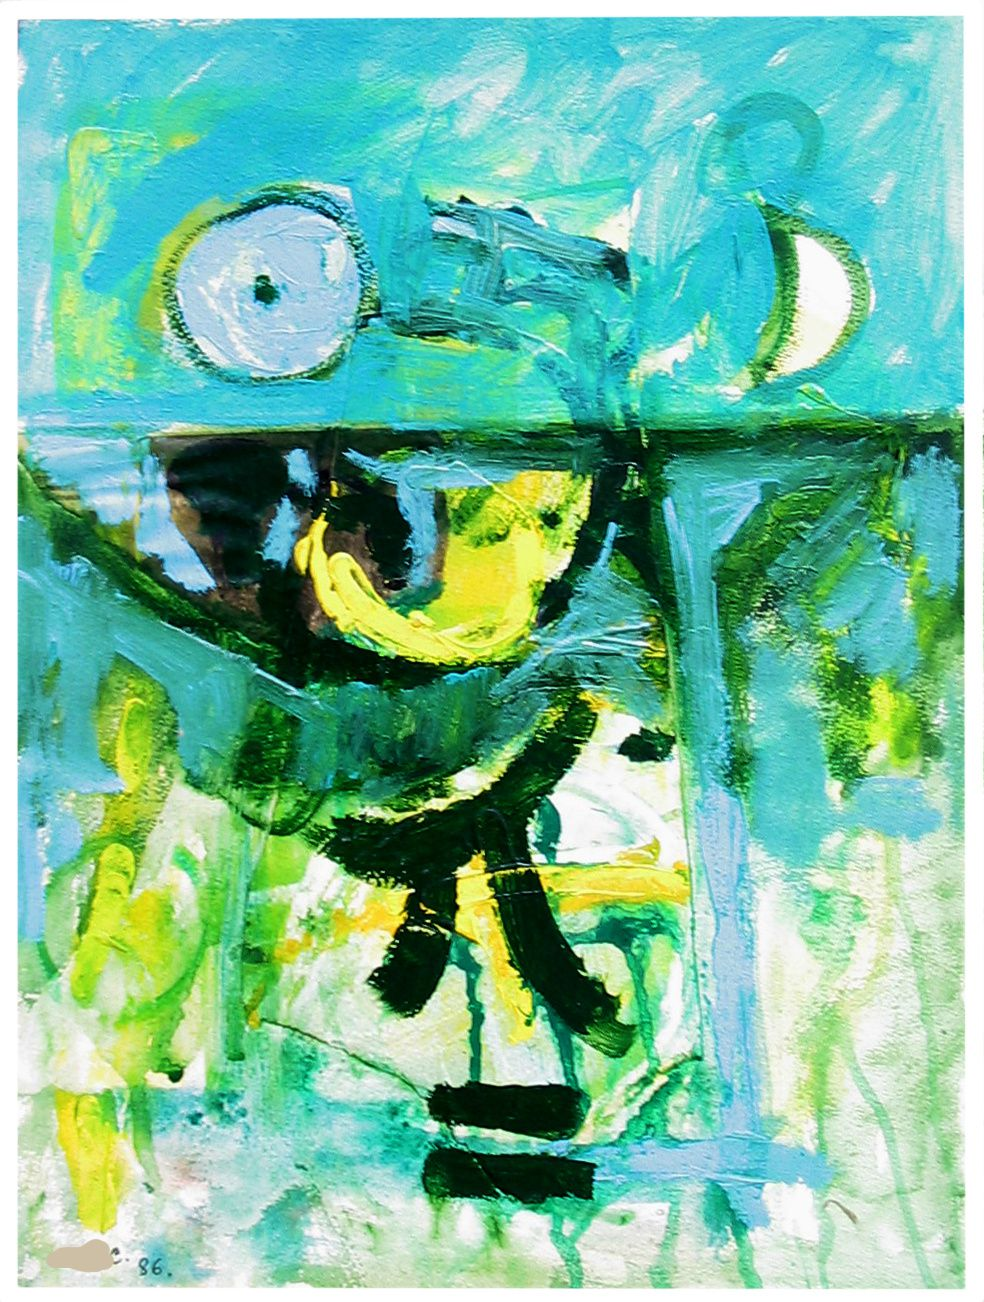 58 -Technique mixte - 40 x 30 cm.